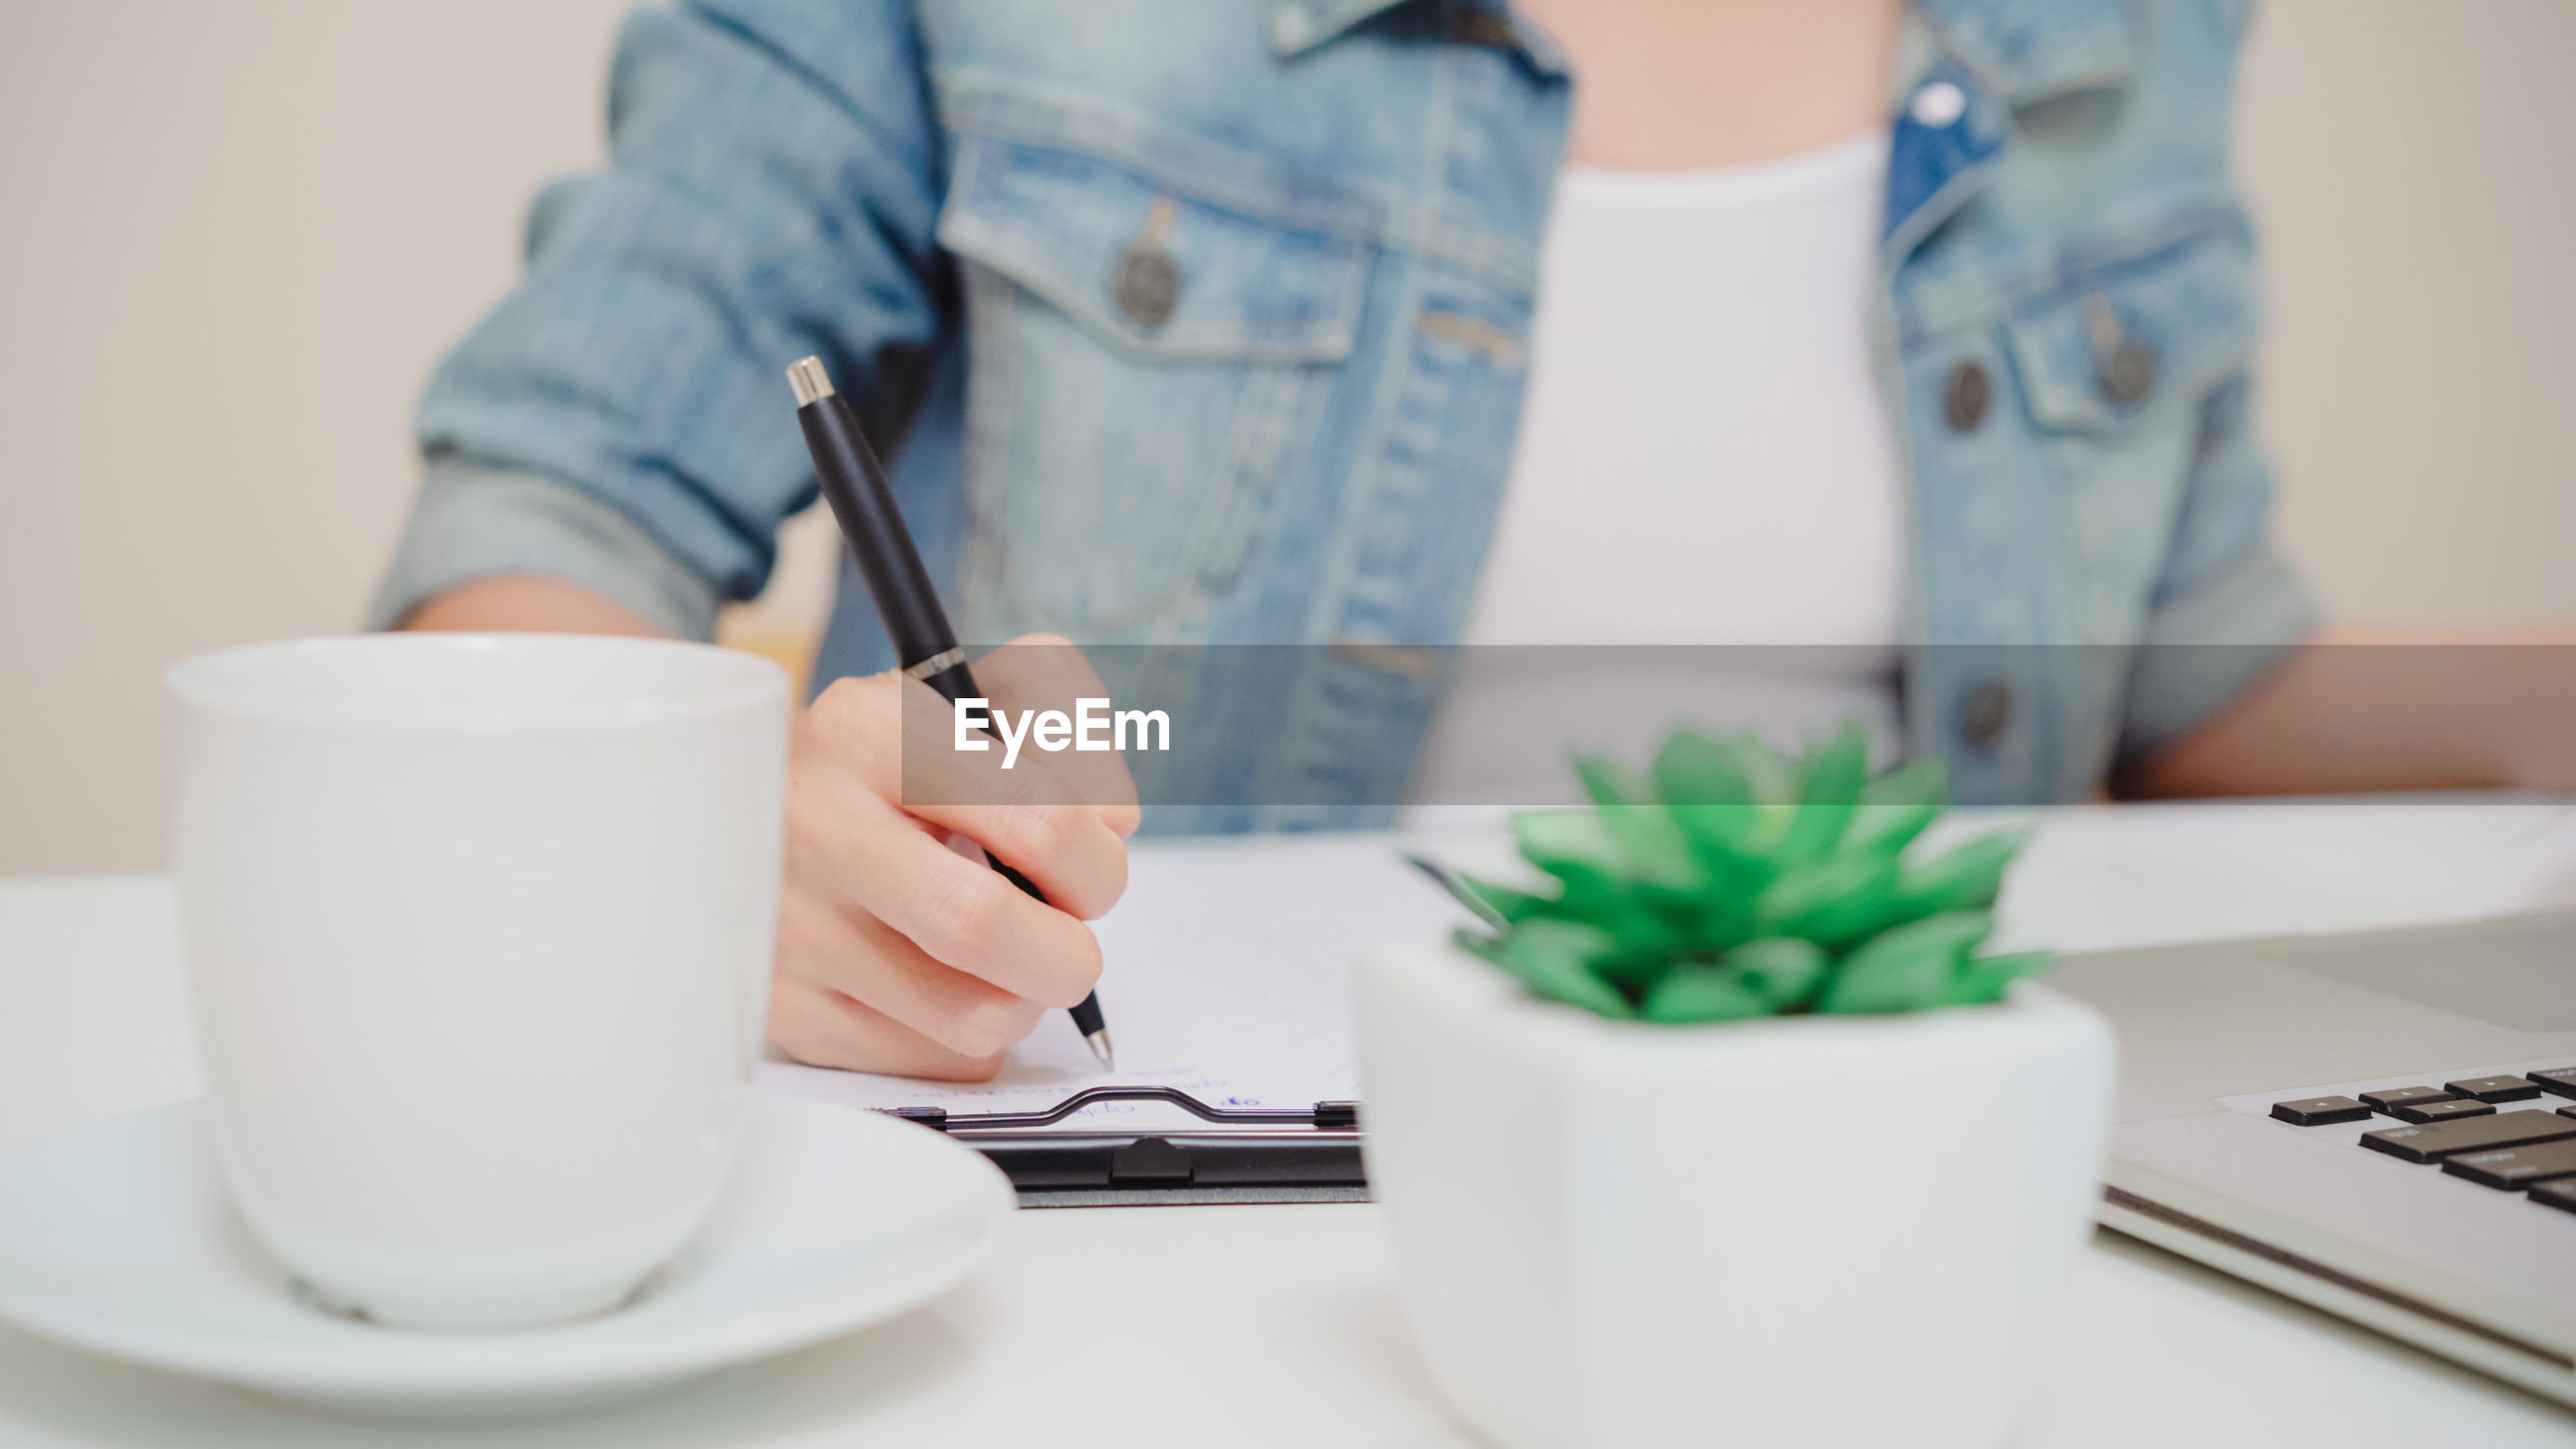 Midsection of young woman writing on paper in office